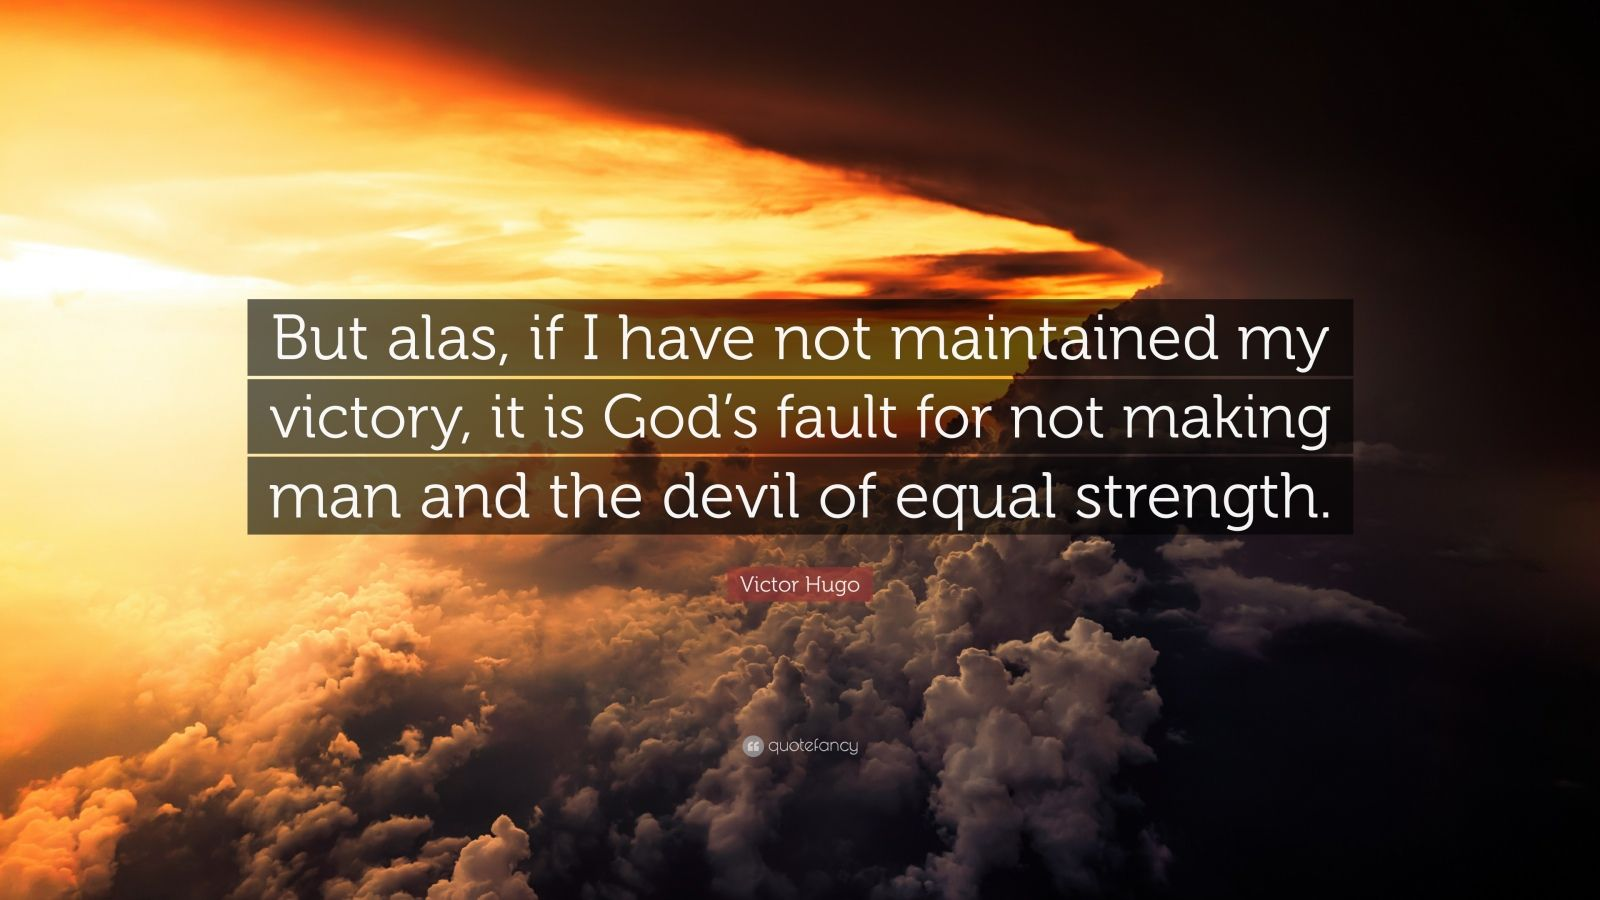 """Victor Hugo Quote: """"But alas, if I have not maintained my victory, it is God's fault for not making man and the devil of equal strength."""""""